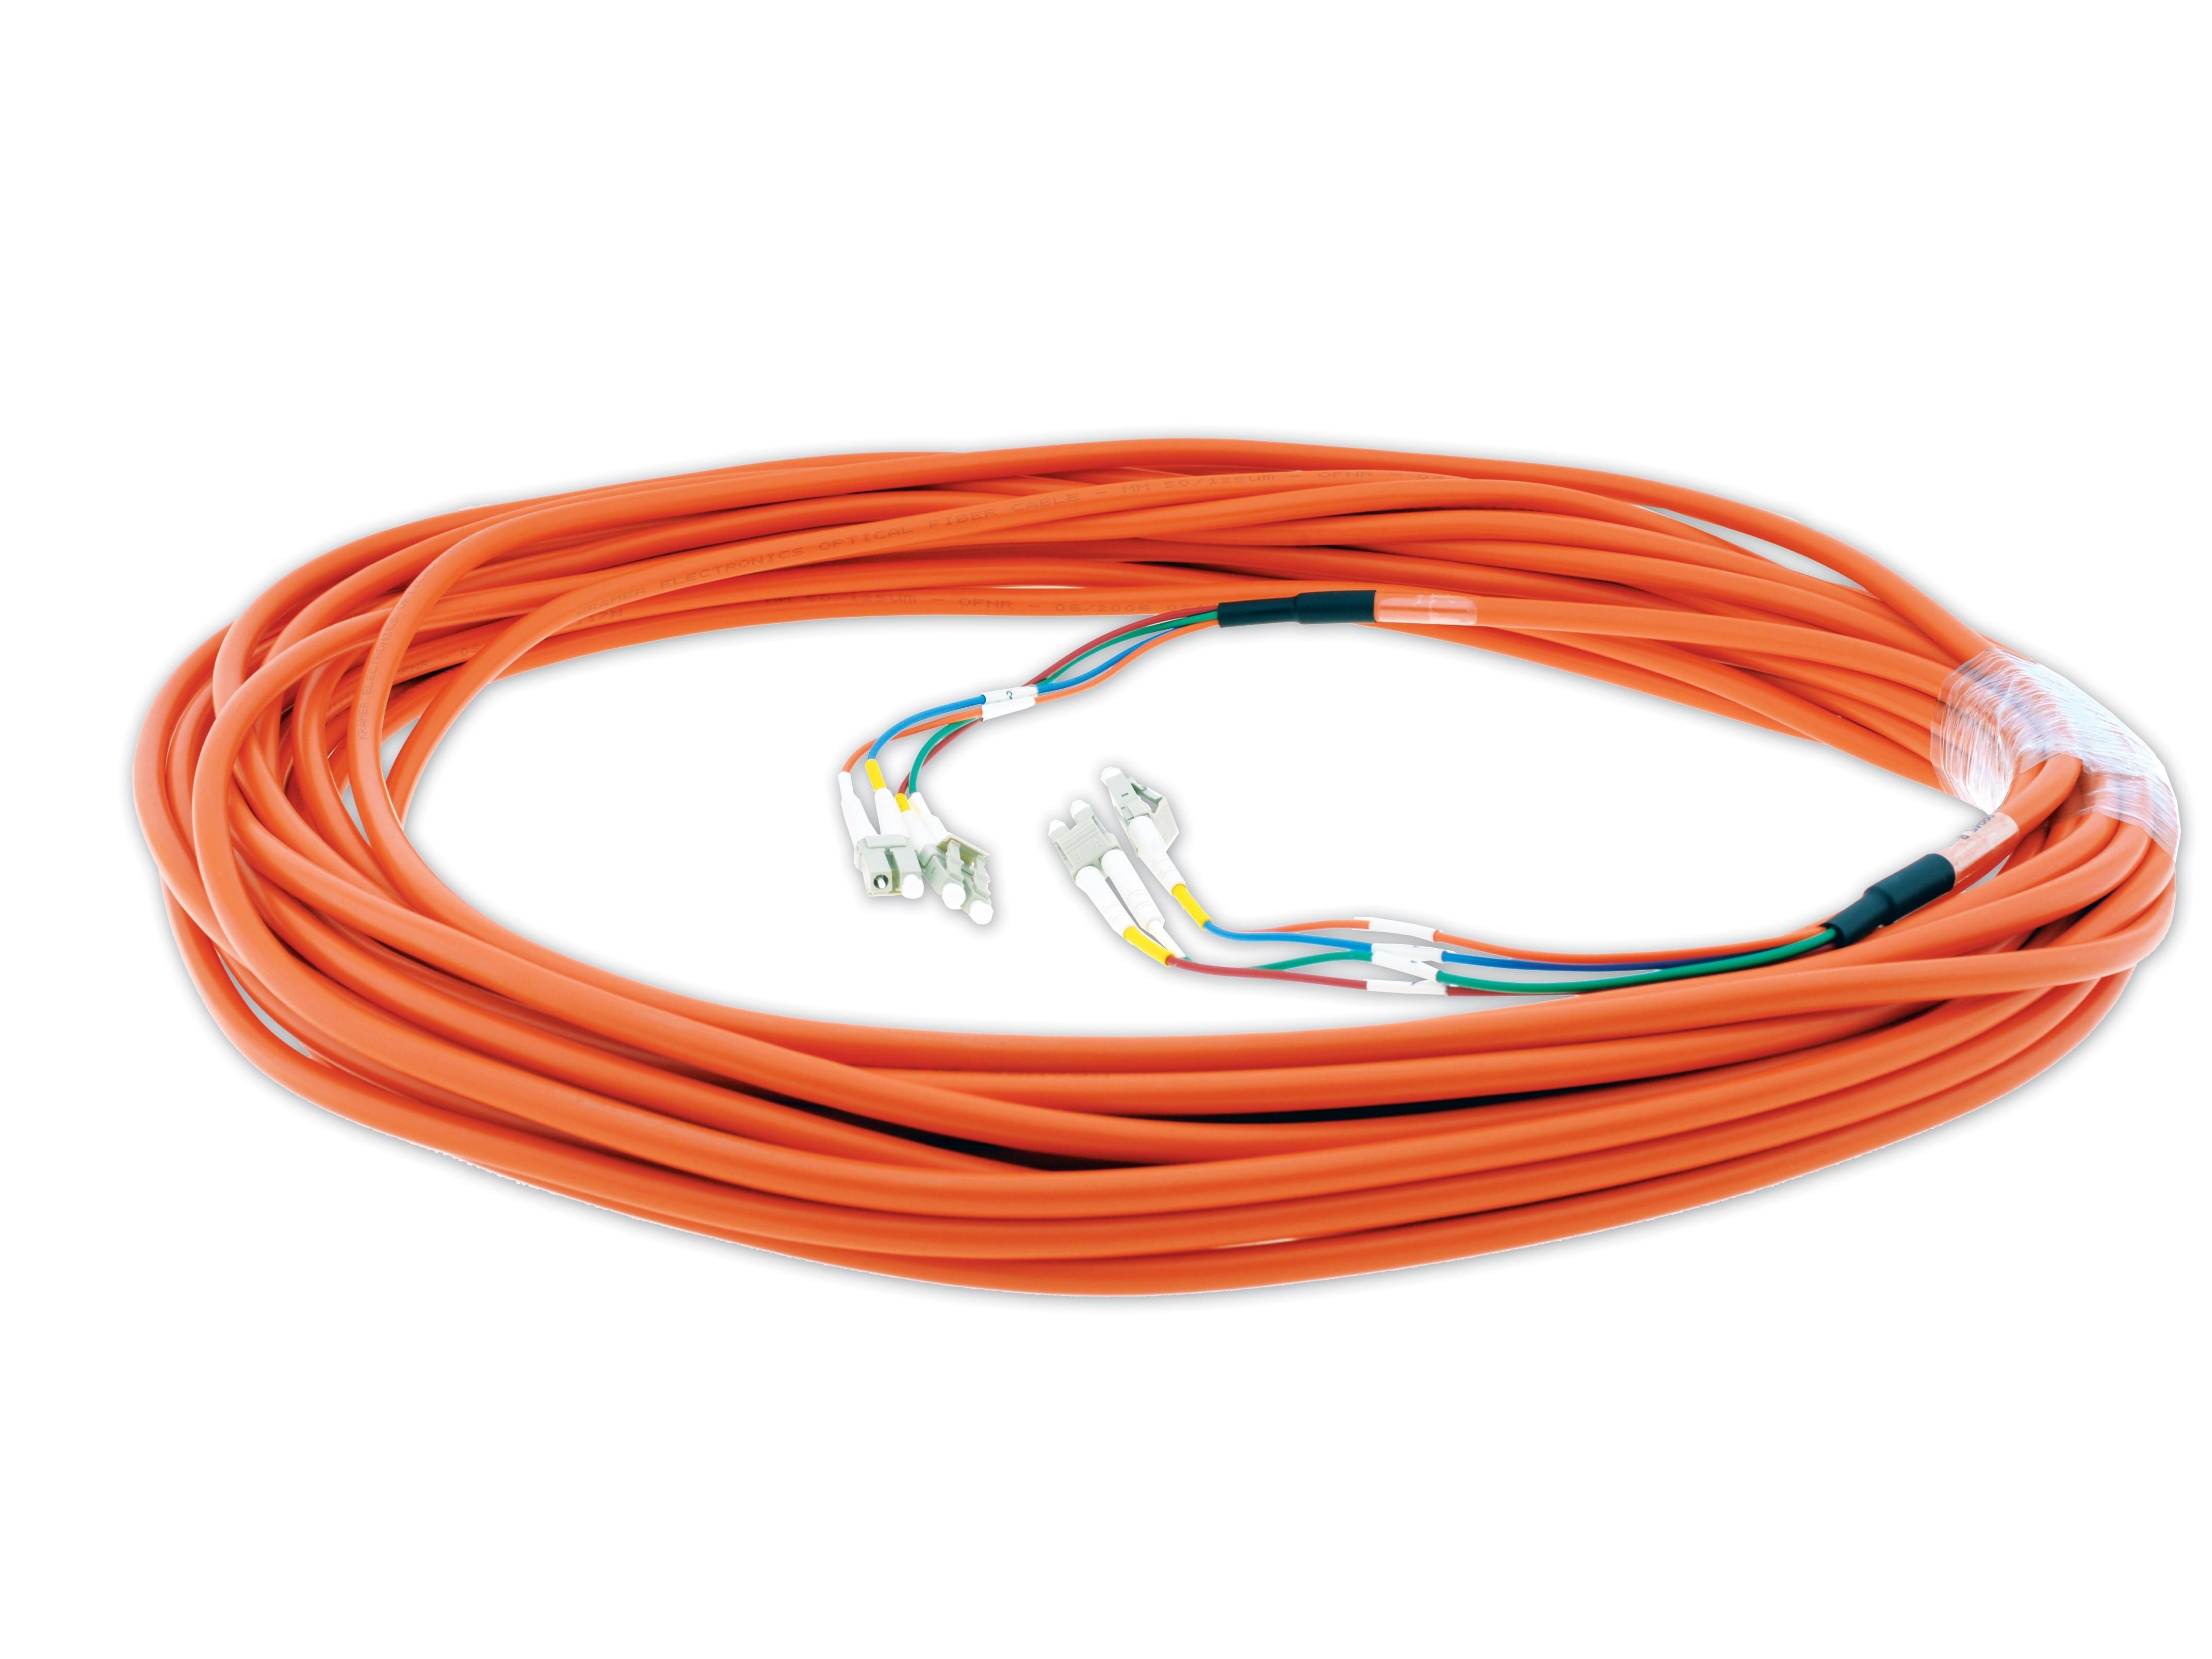 CP-4LC/4LC-99 99ft 4 LC Plenum Rated Fiber Optic Cable by Kramer